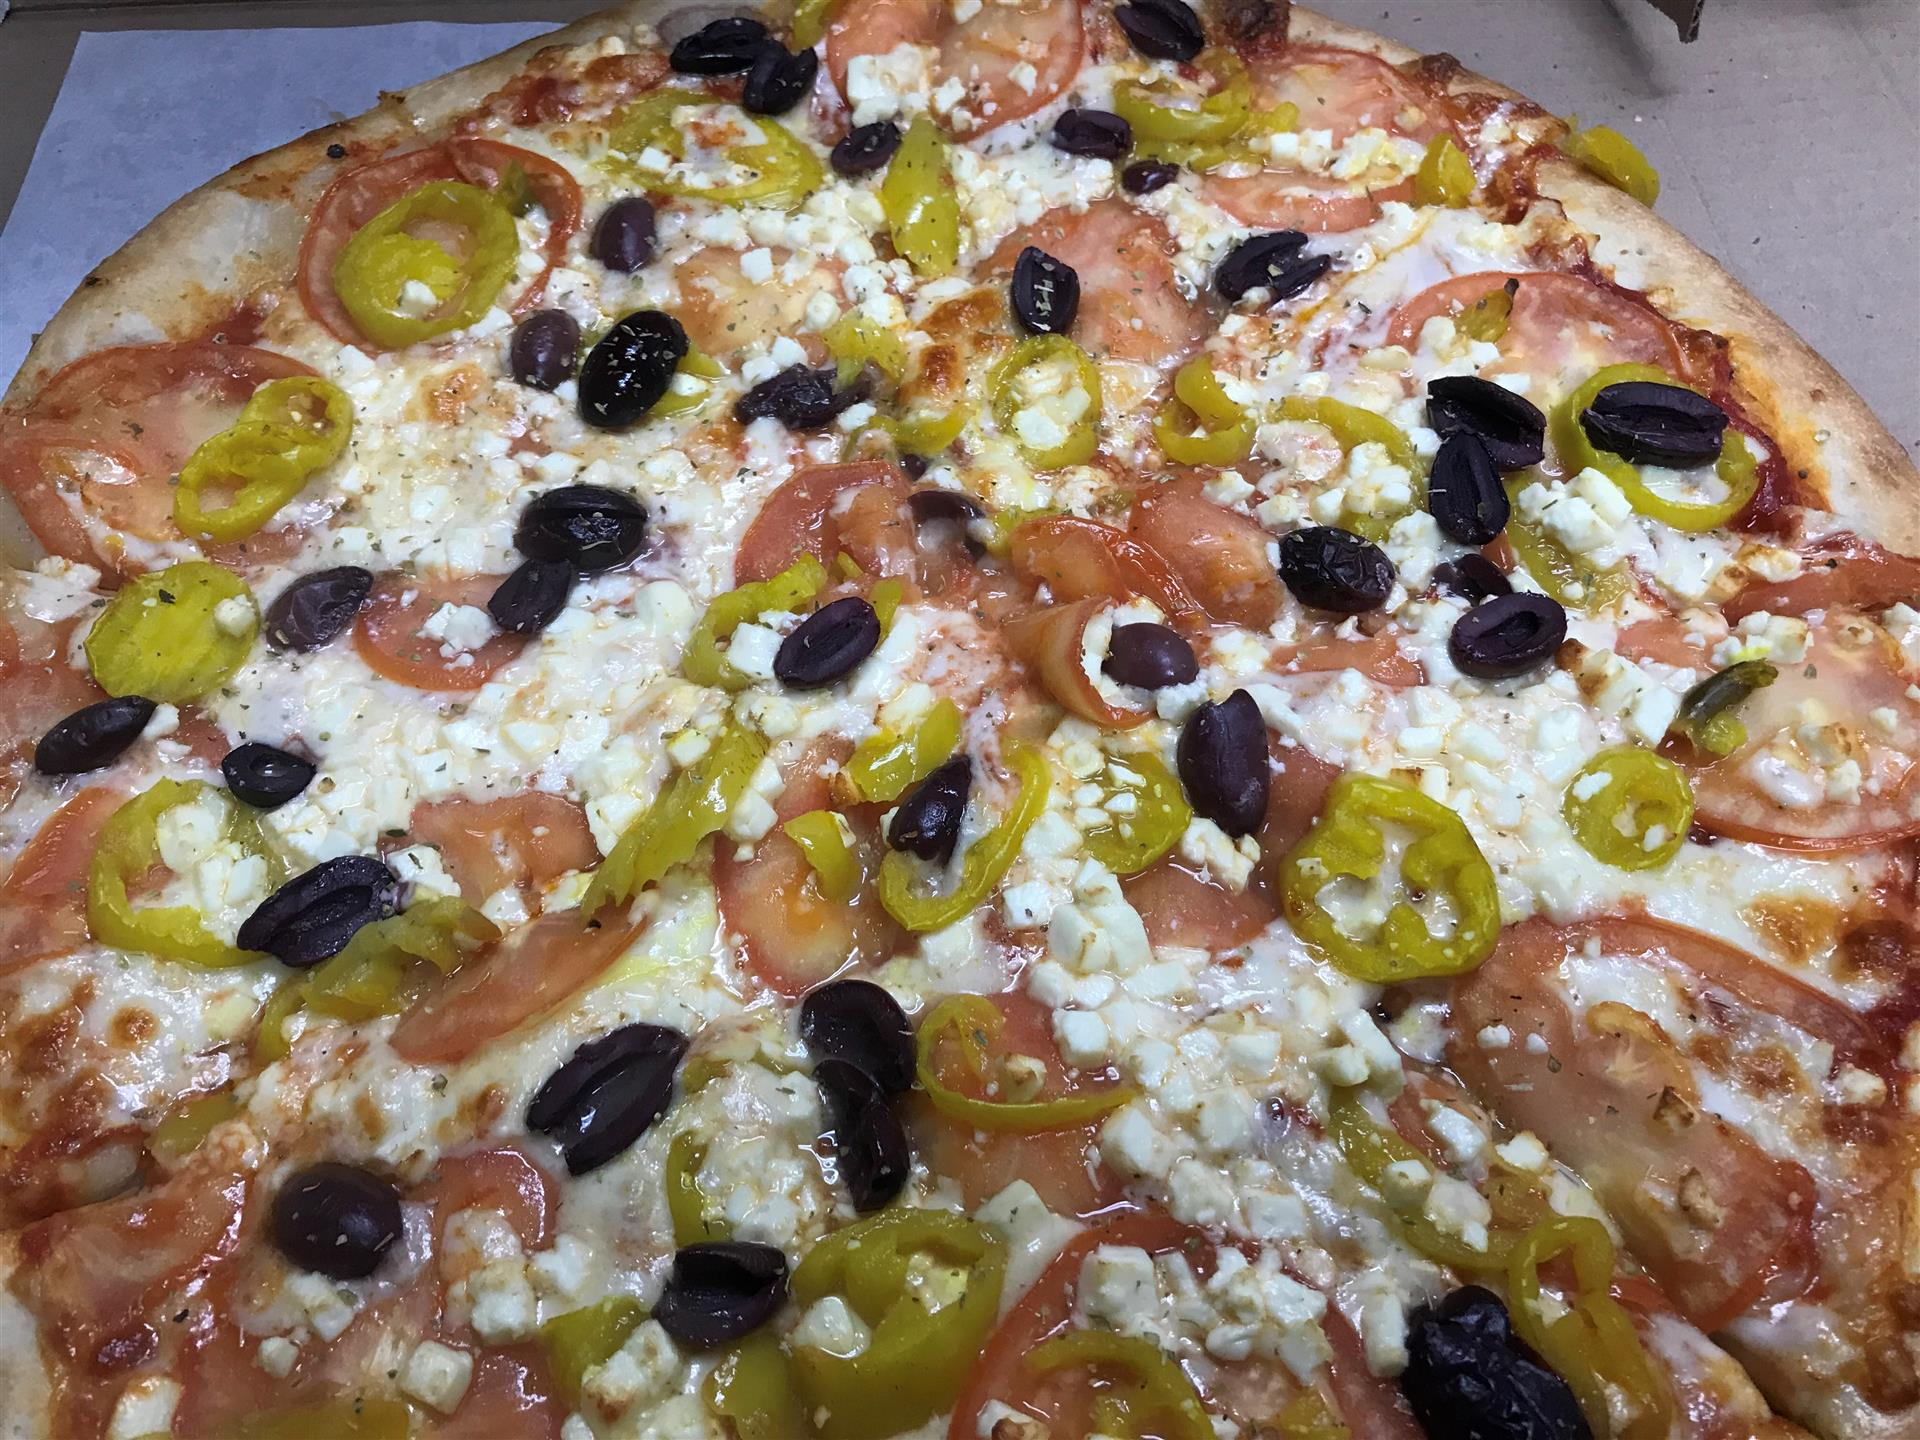 large pizza topped with tomatoes, banana peppers, black olives and feta cheese.